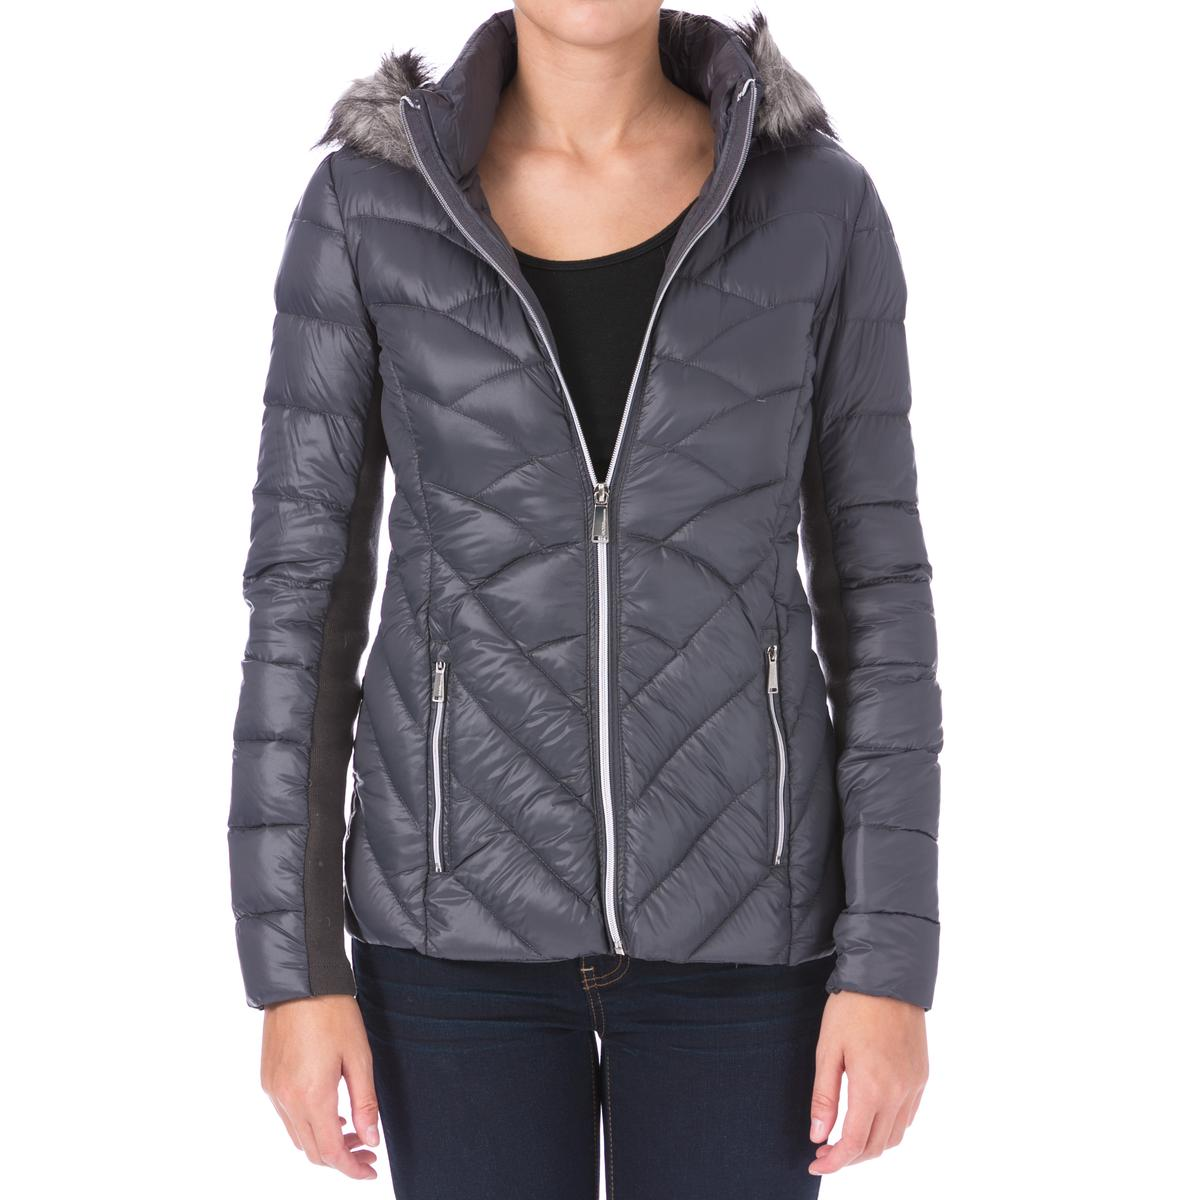 Women's FashionWomen's Quilted Lightweight JacketsWomen's Down Coats Shop Best Sellers· Deals of the Day· Fast Shipping· Read Ratings & Reviews2,,+ followers on Twitter.